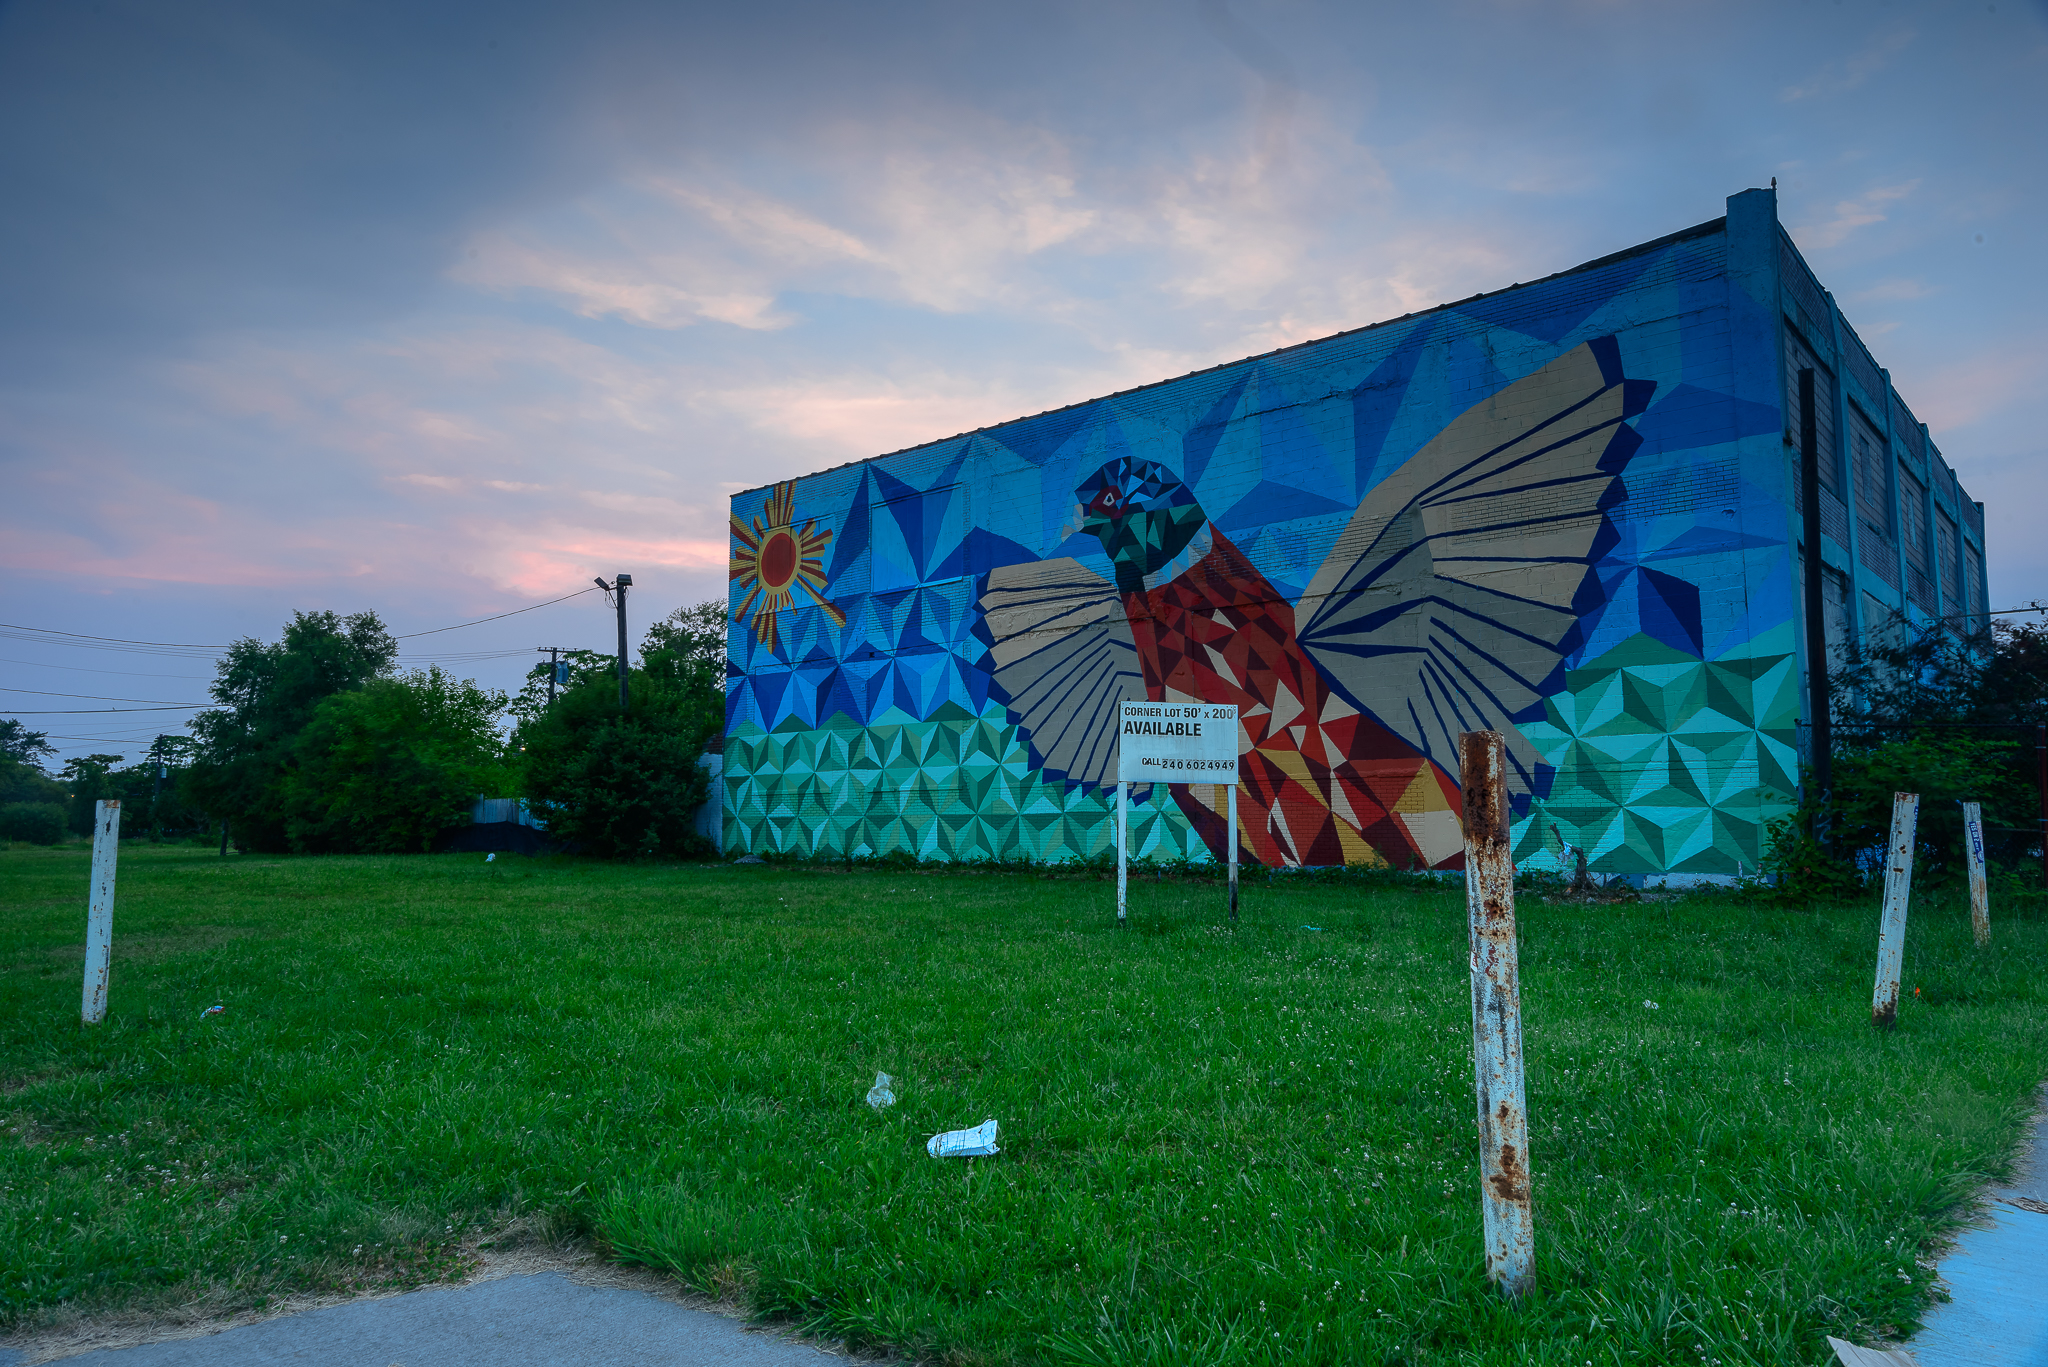 7/5/15. When a new mural pops up, you know. This one is a few blocks from our home.